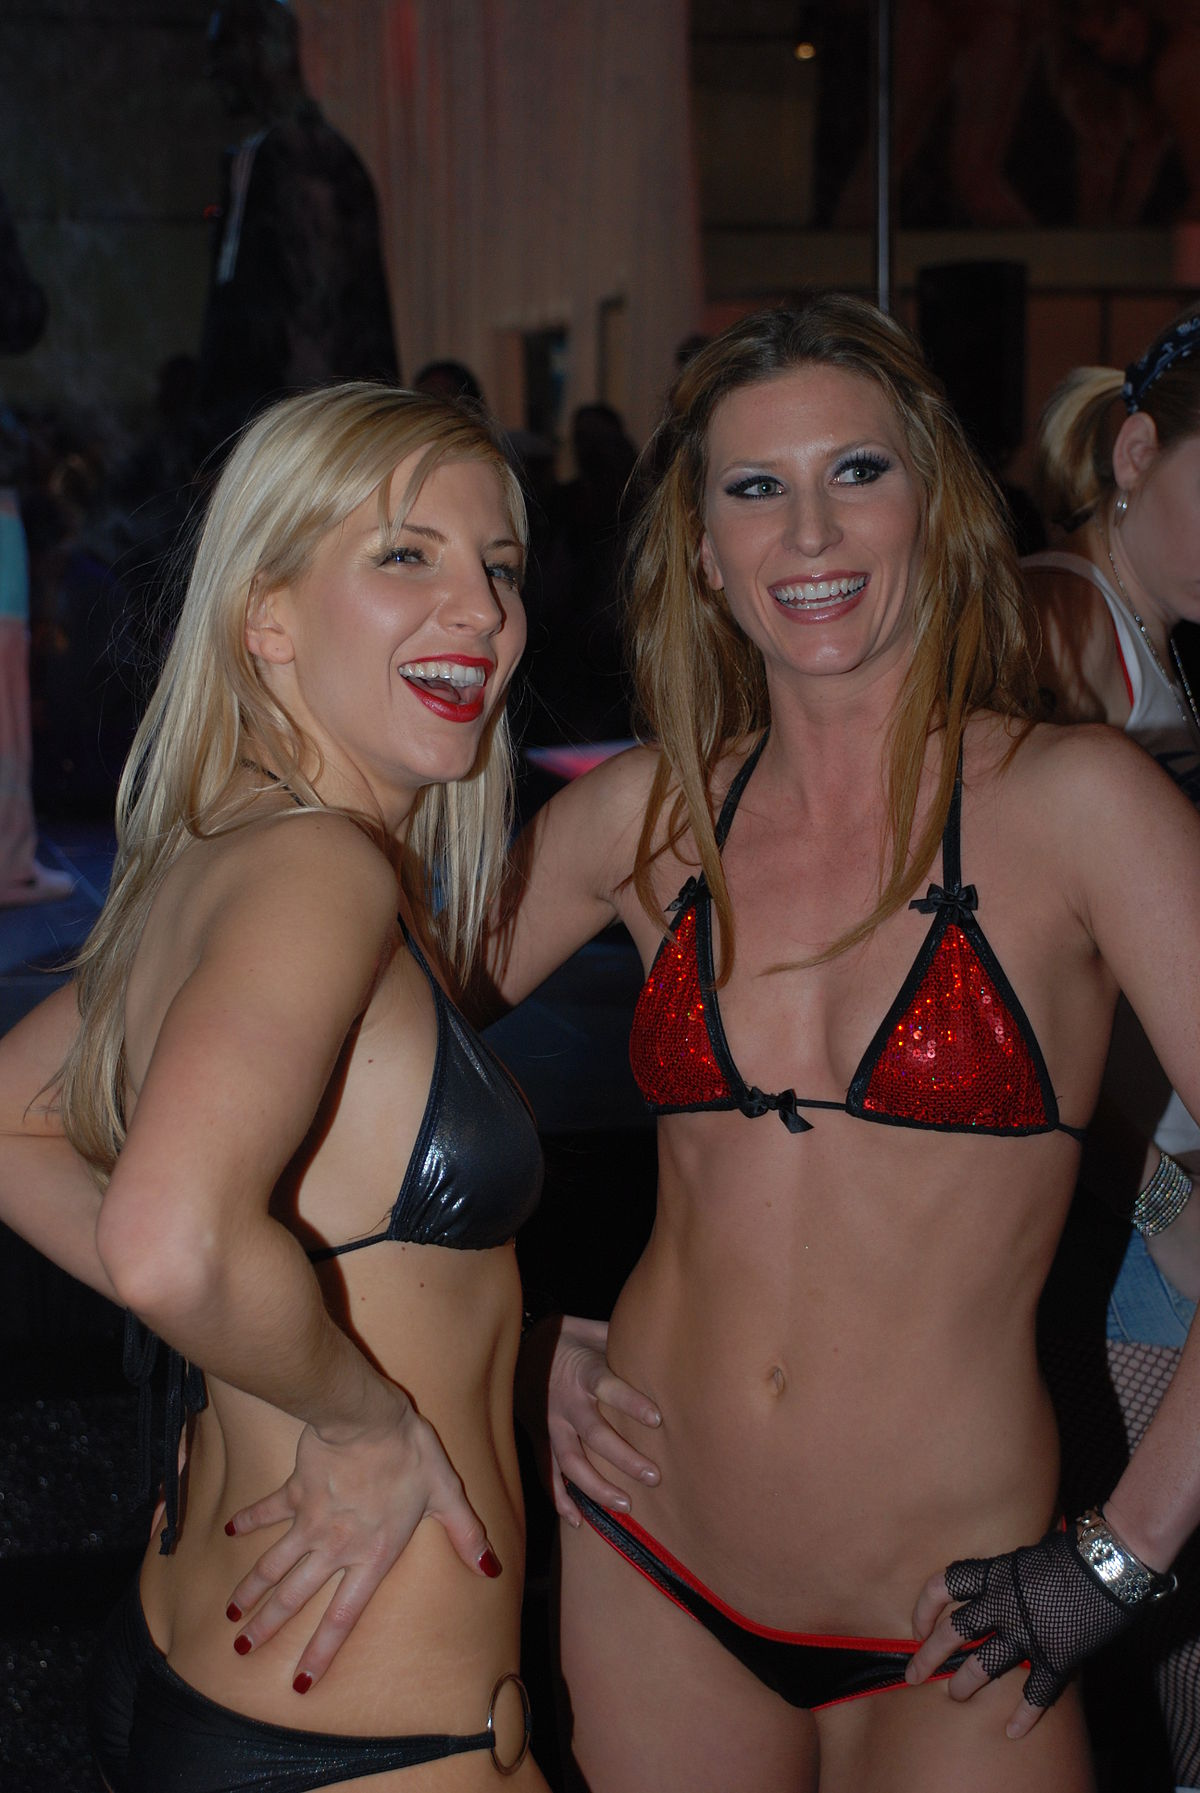 http://upload.wikimedia.org/wikipedia/commons/thumb/b/b6/Ashley_Fires_and_Ariel_X_at_AVN_Adult_Entertainment_Expo_2009_%288%29.jpg/1200px-Ashley_Fires_and_Ariel_X_at_AVN_Adult_Entertainment_Expo_2009_%288%29.jpg